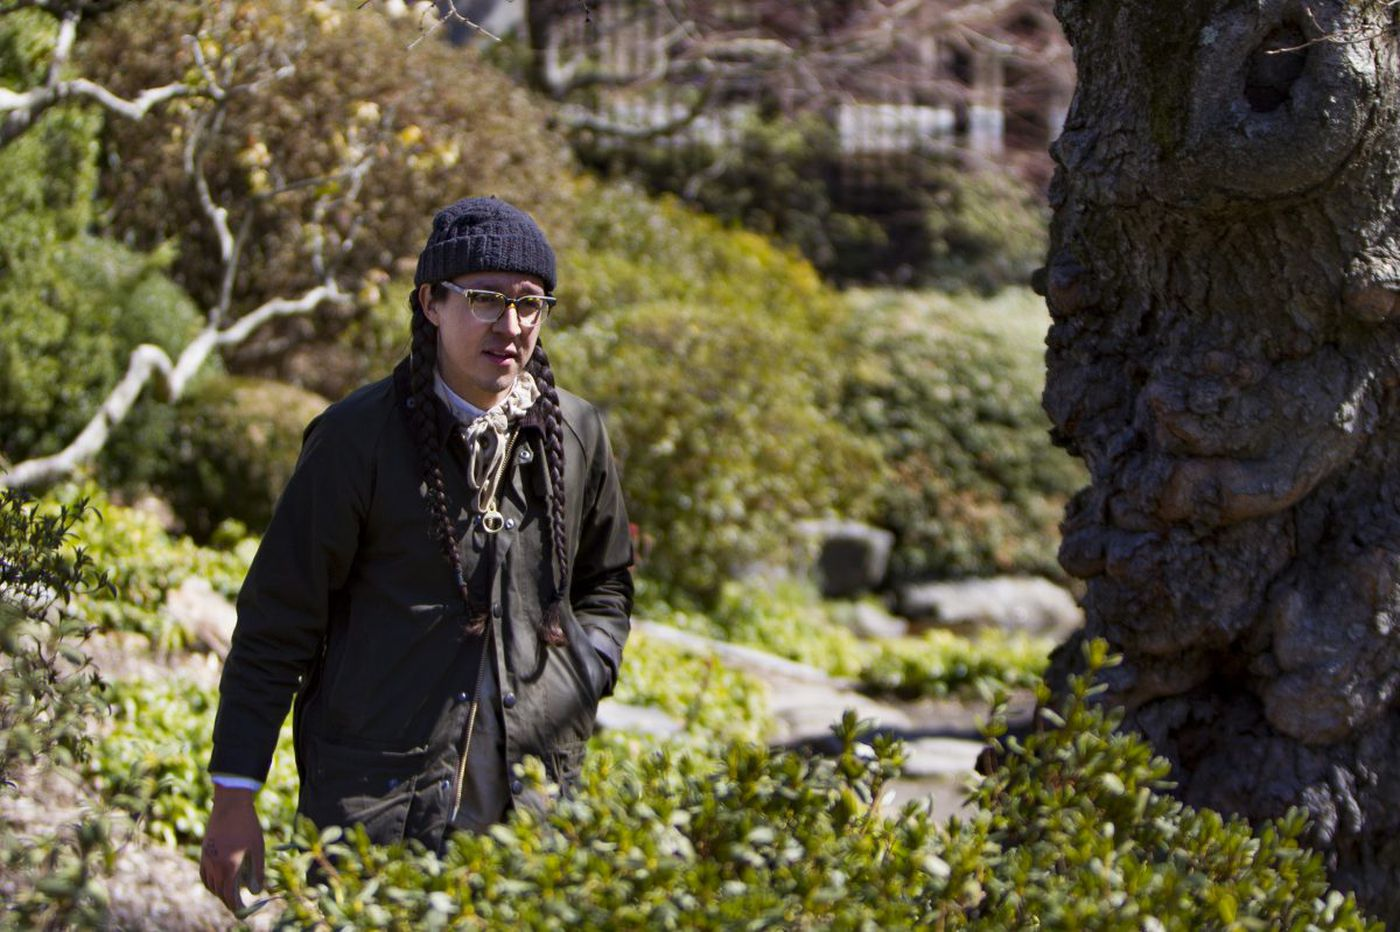 Japanese House head gardener went from forager to 'de facto cherry blossom expert' | We the People